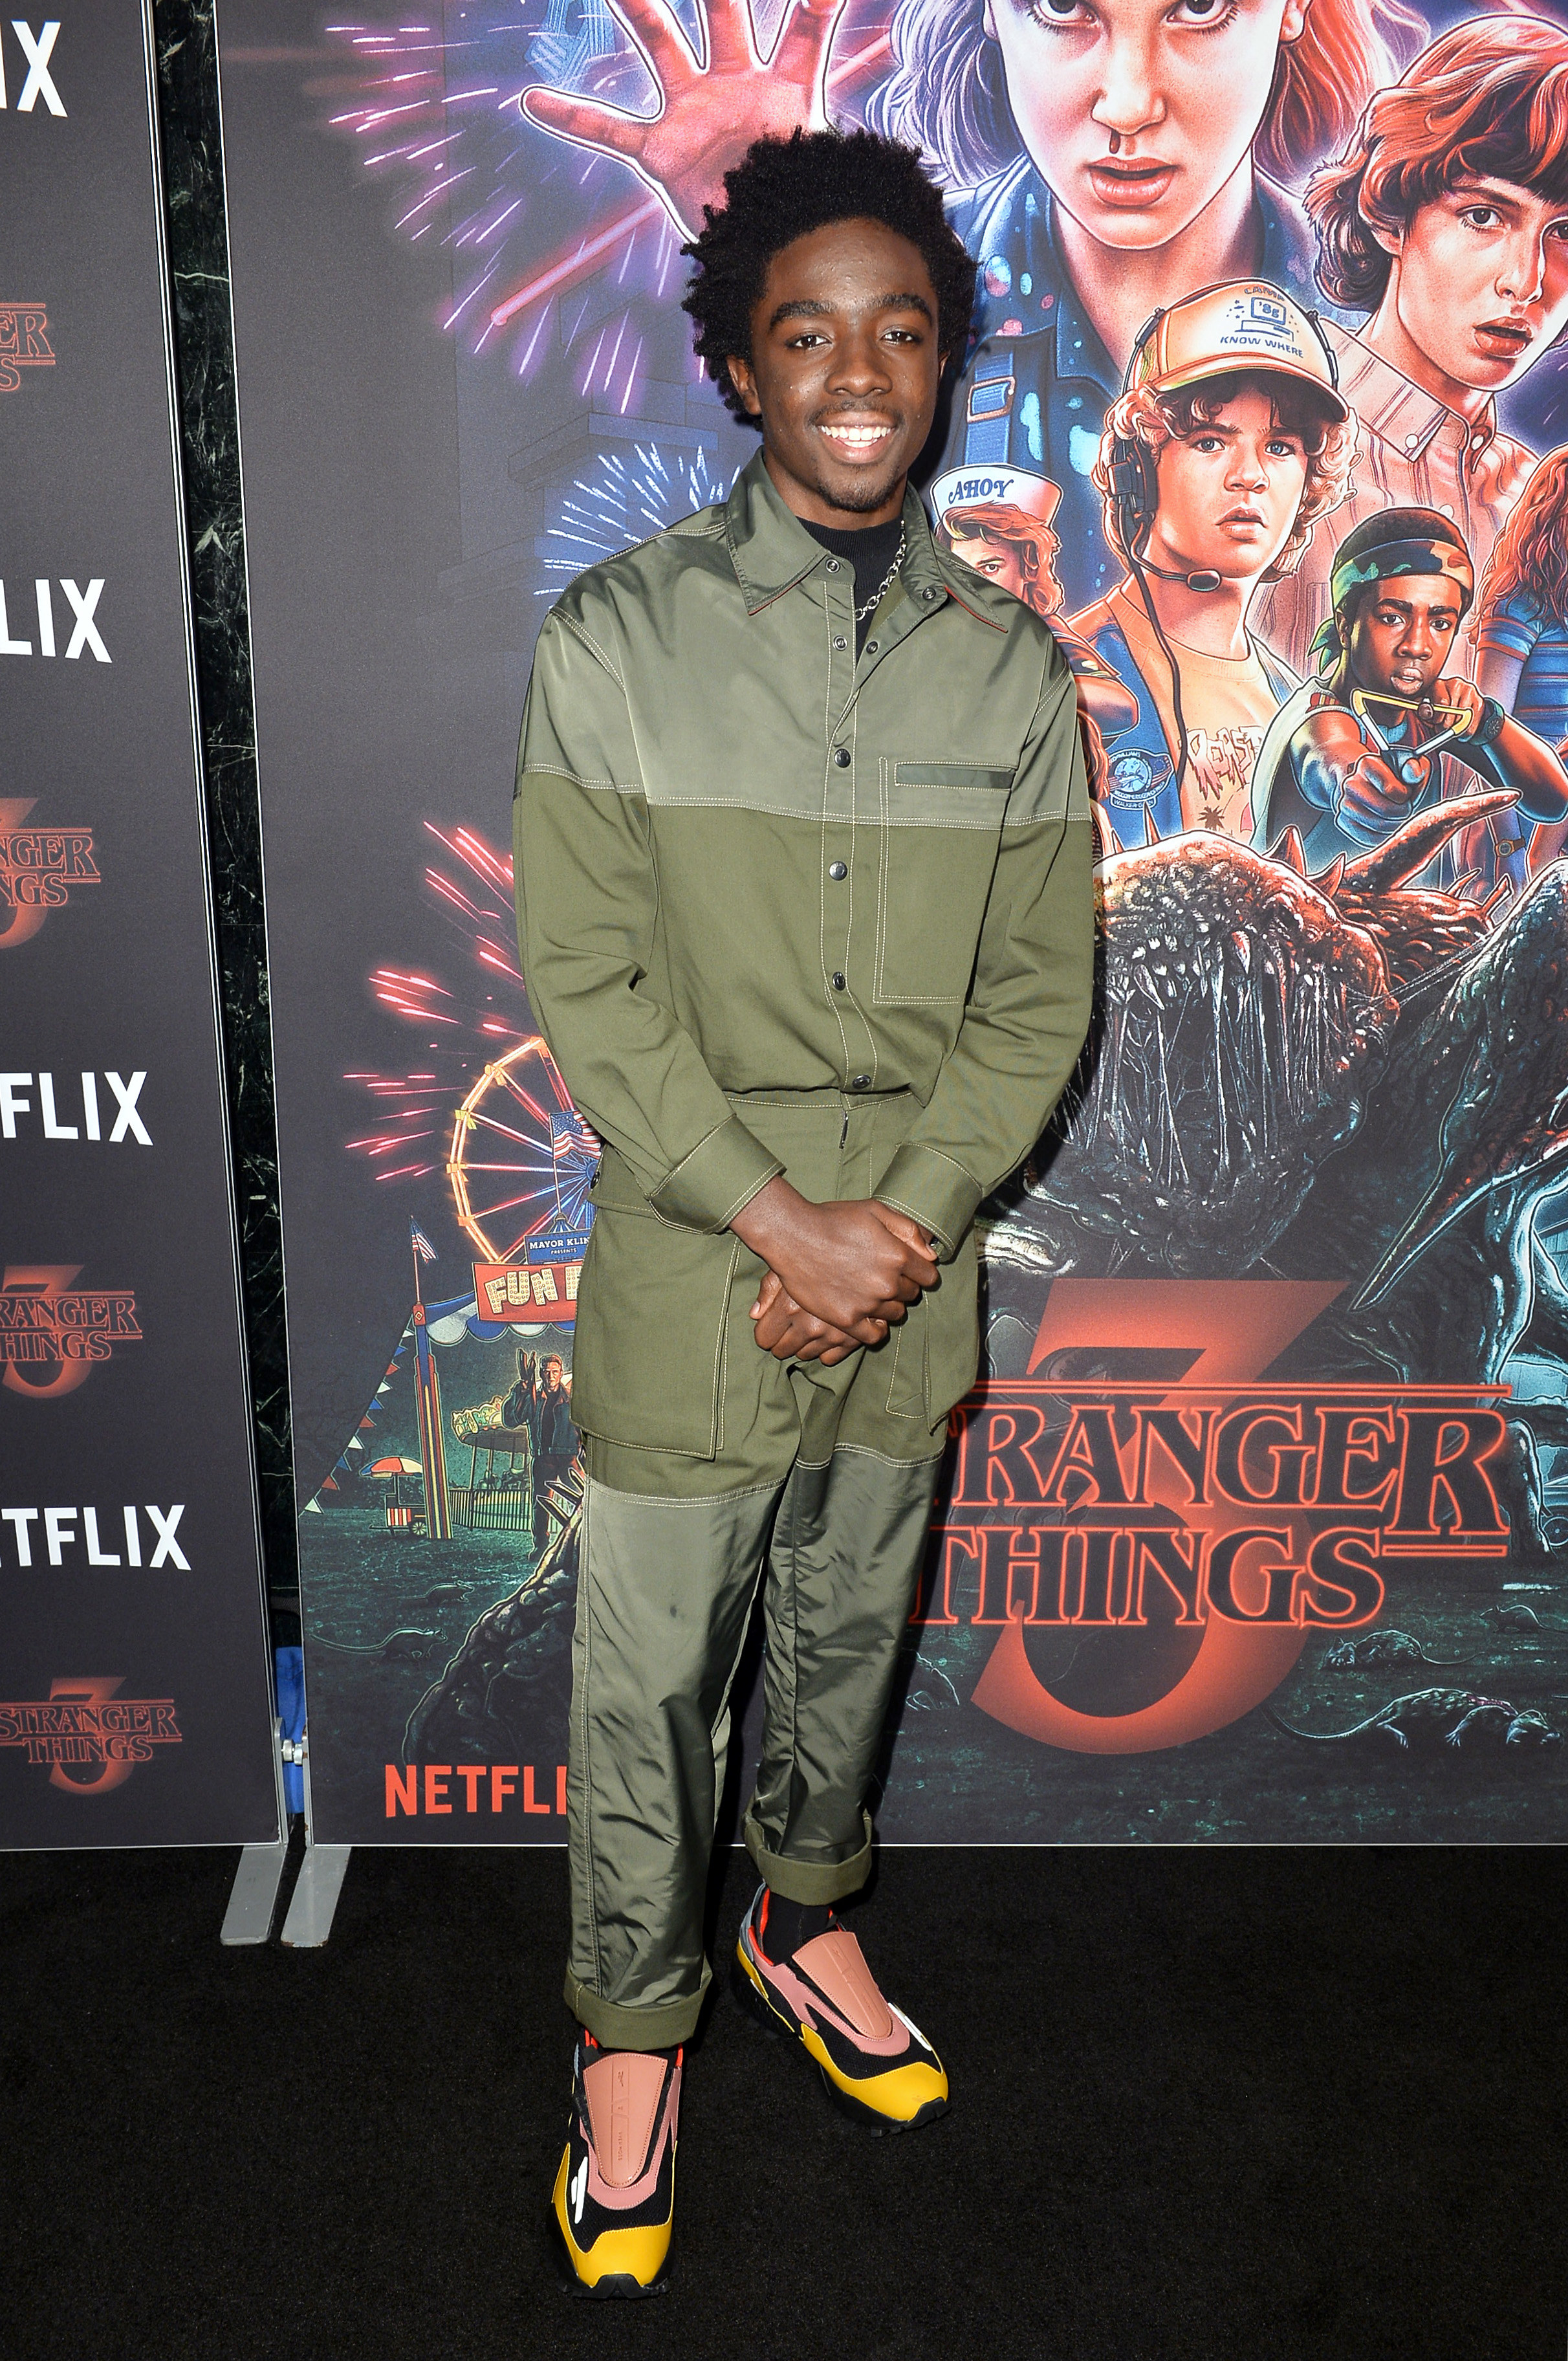 Caleb is smiling at a premiere wearing another monochromatic outfit with multicolored sneakers.